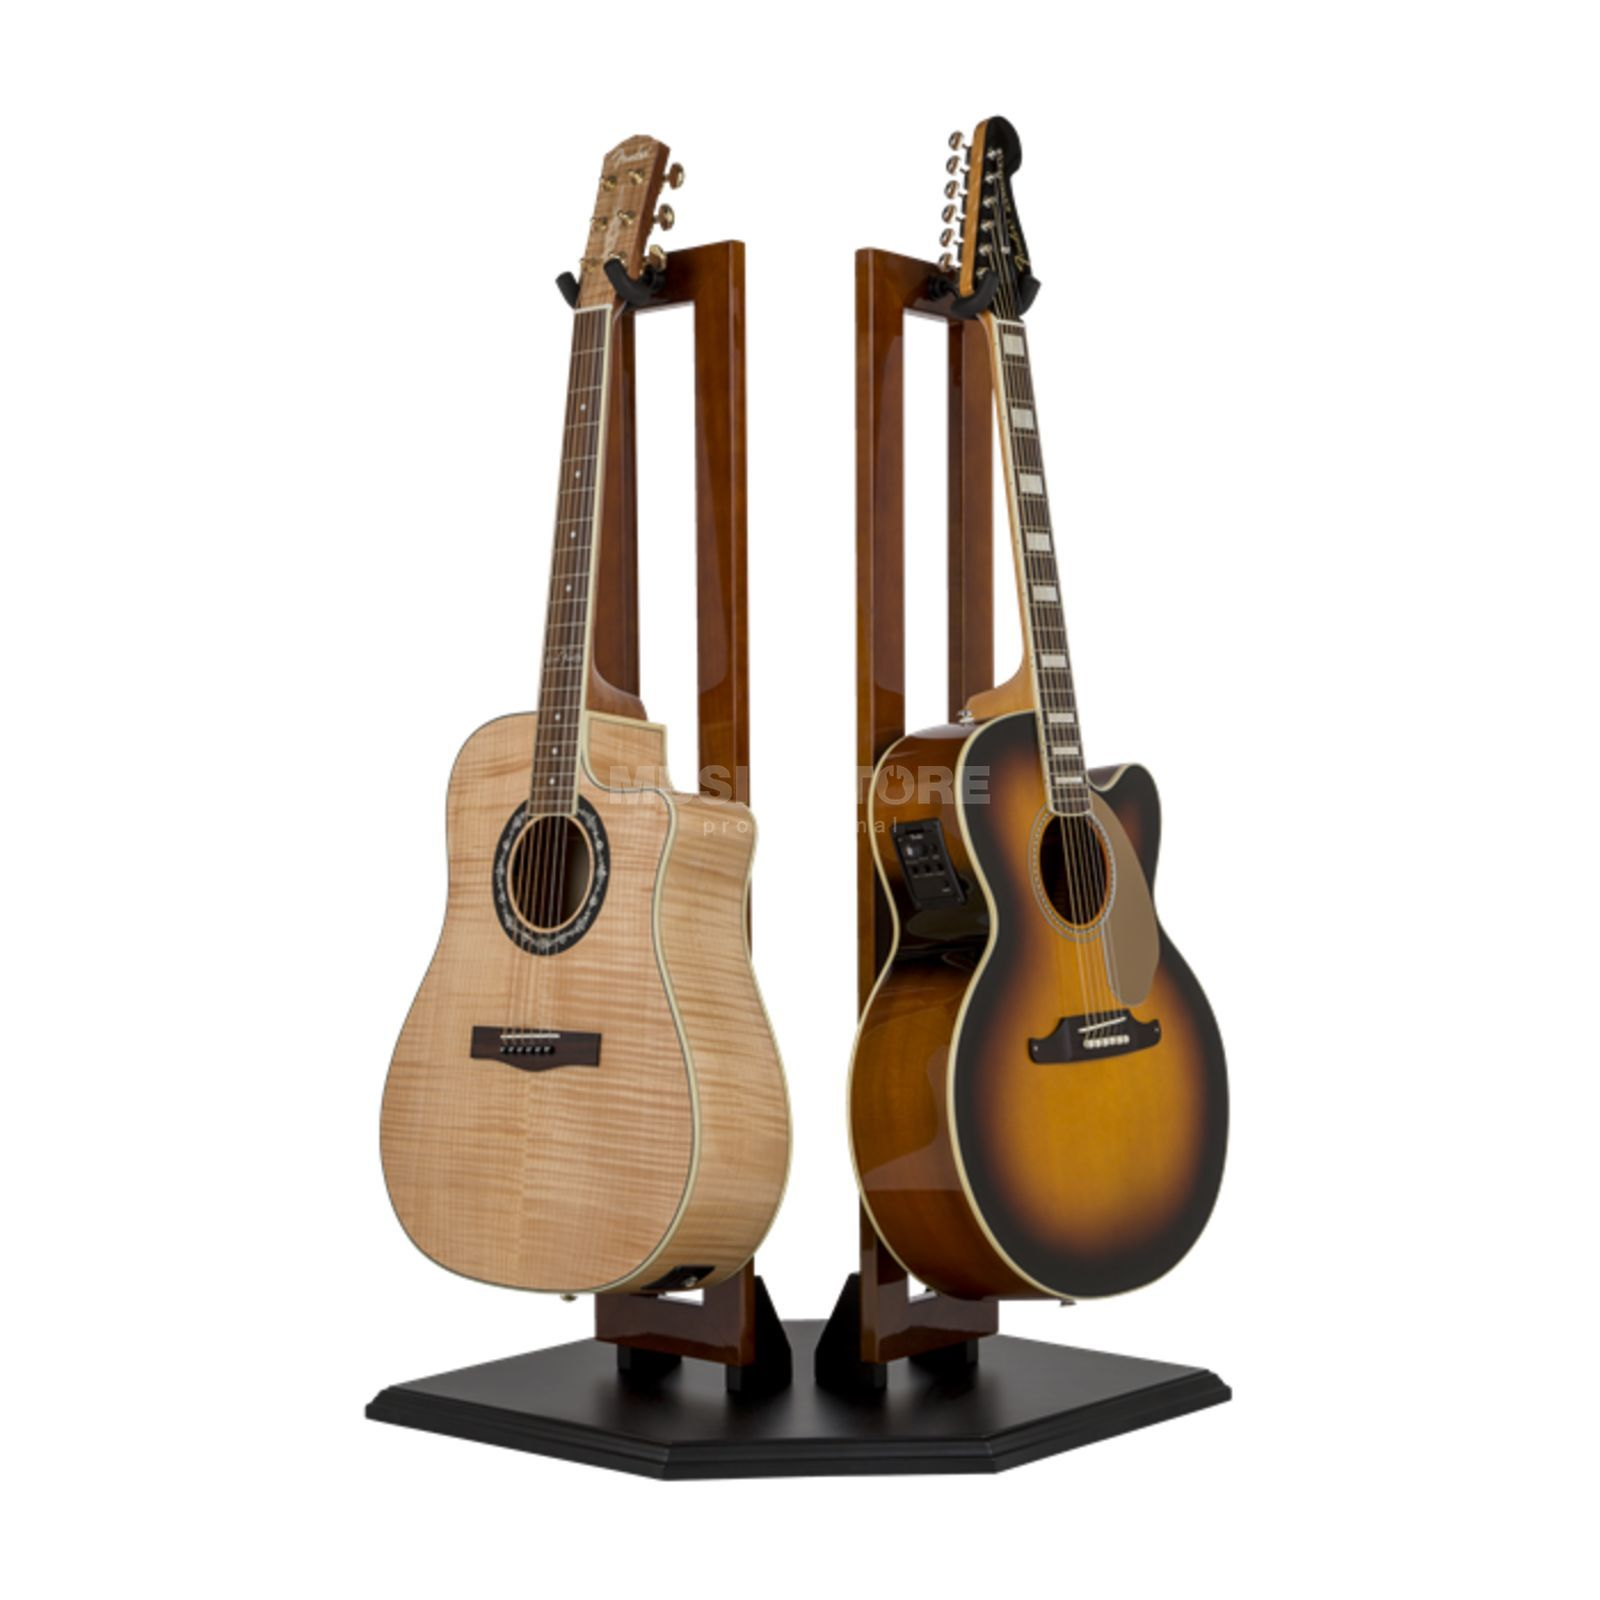 Fender Wood Hanging Display Stand - Double Guitar Stand Cherry Productafbeelding